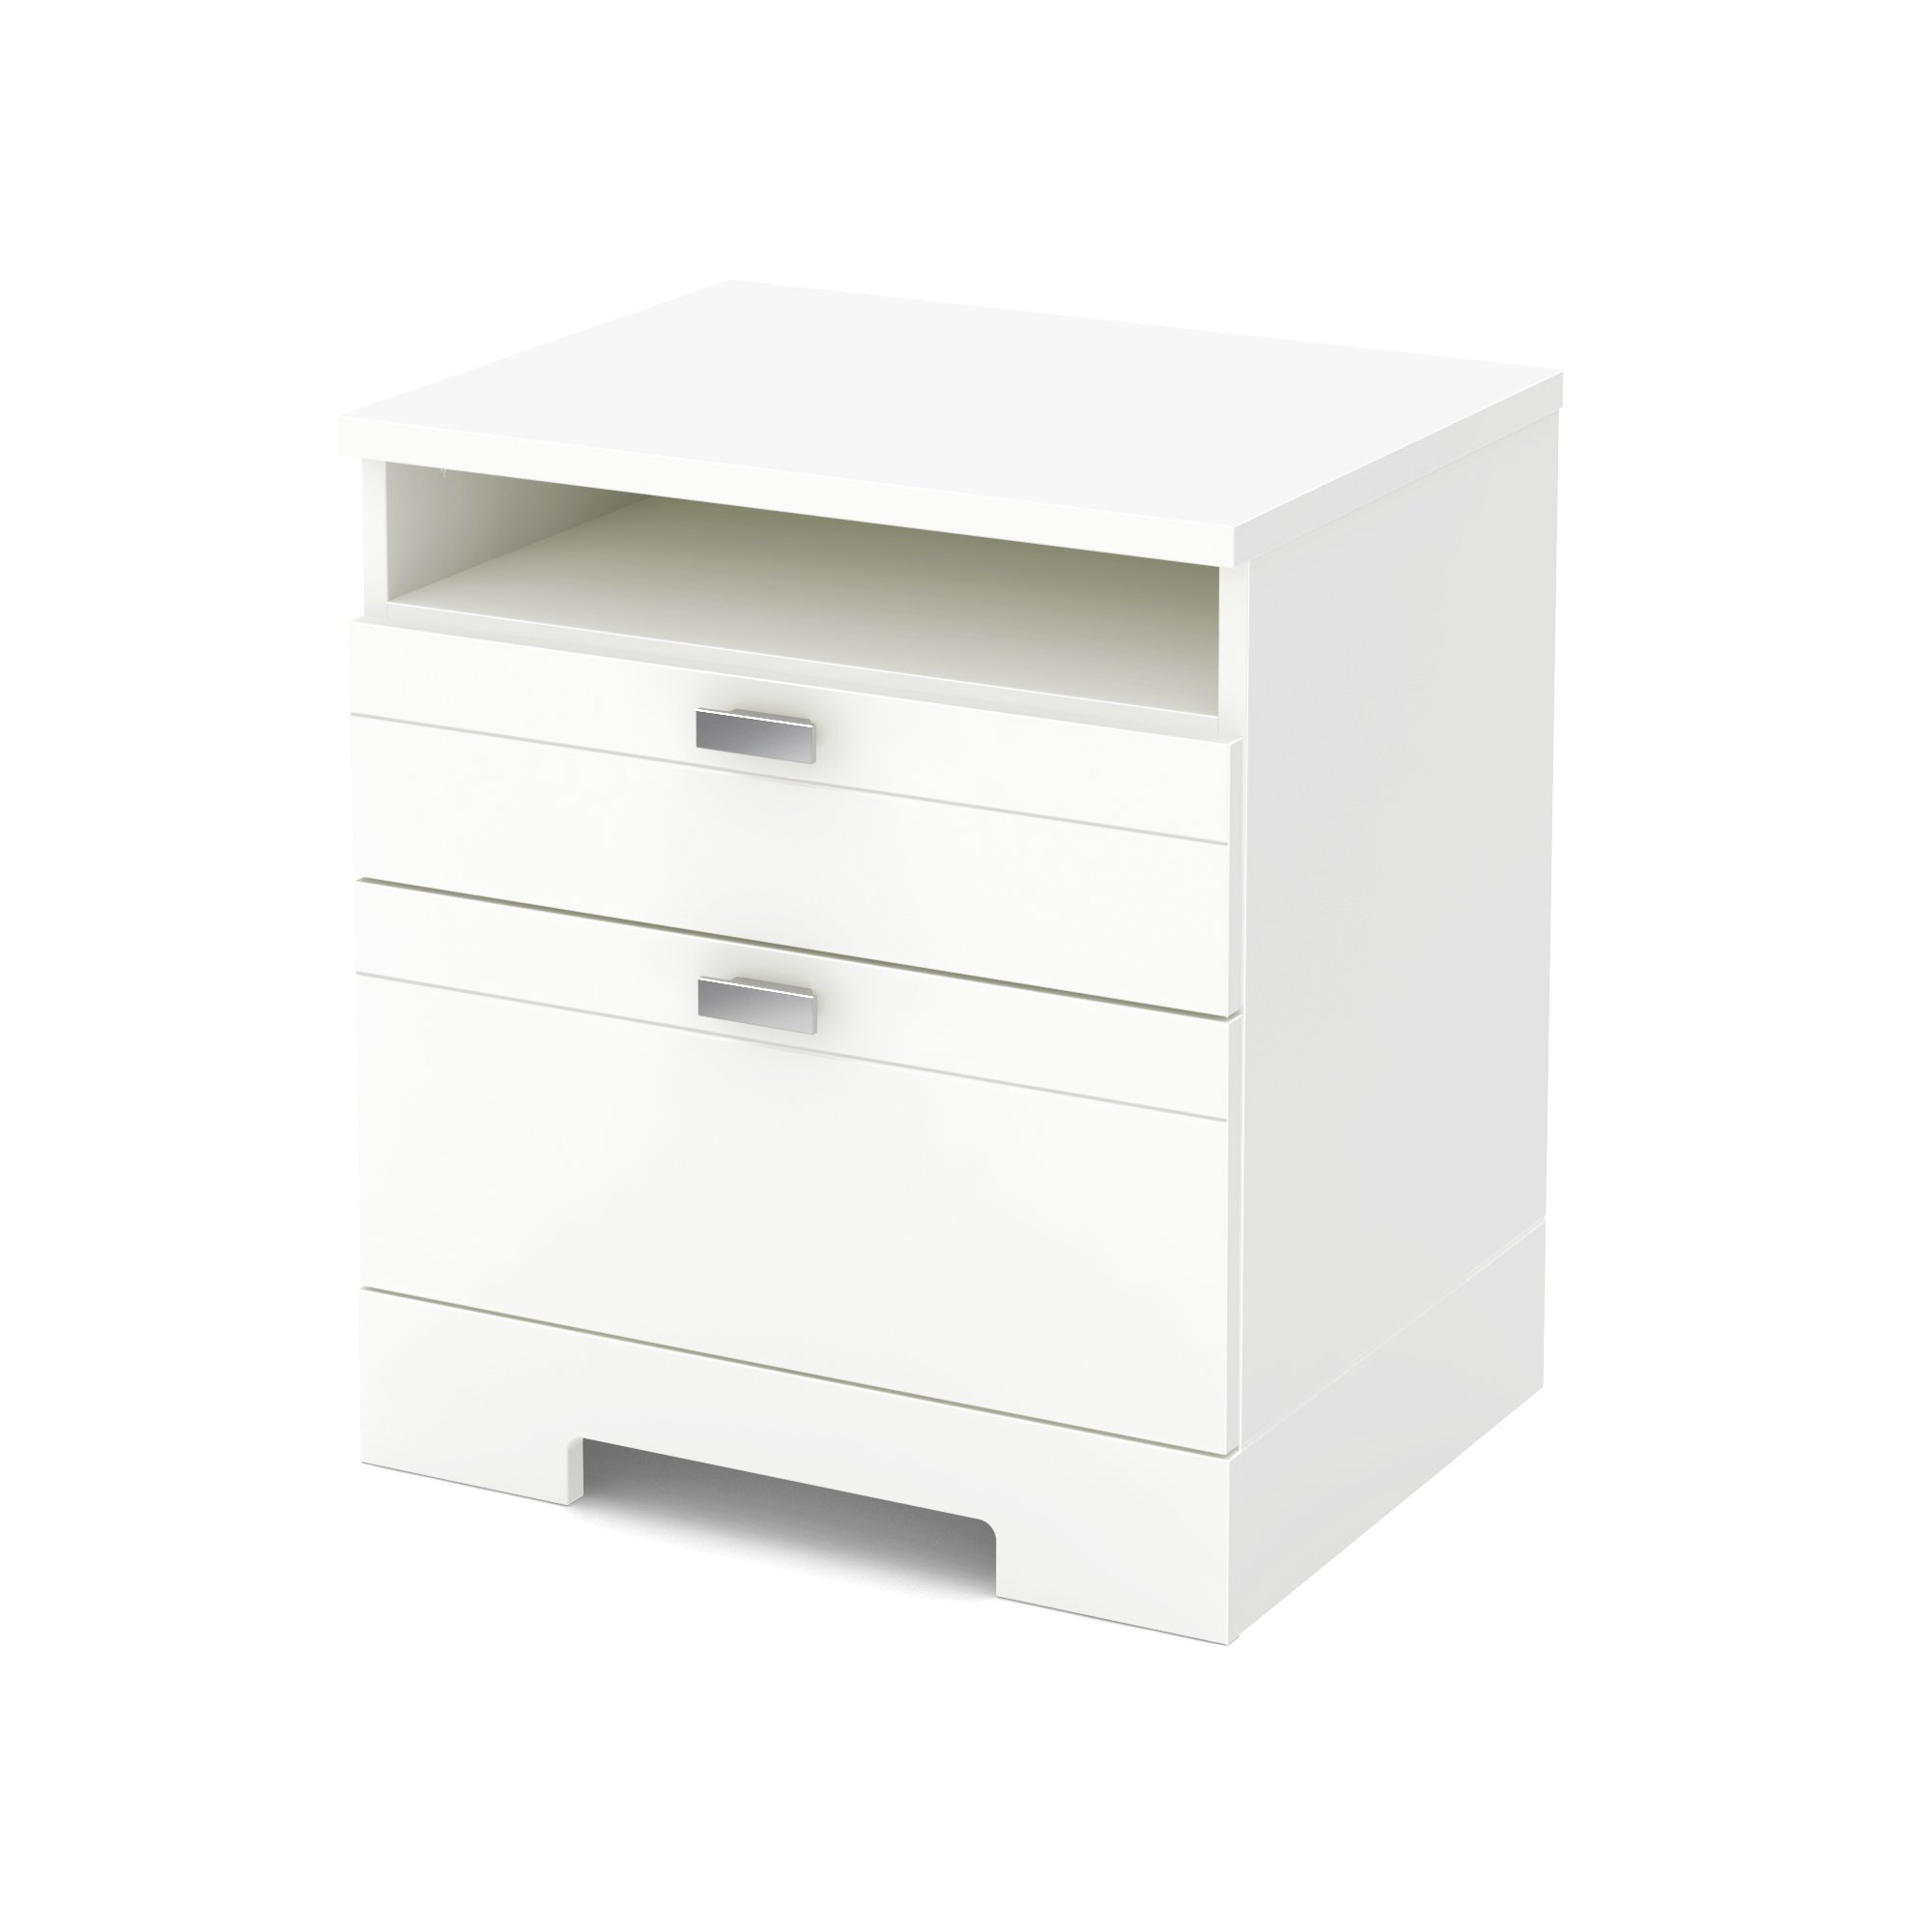 South Shore Reevo 2-Drawer Nightstand, Pure White with Matte Nickel Handles by South Shore